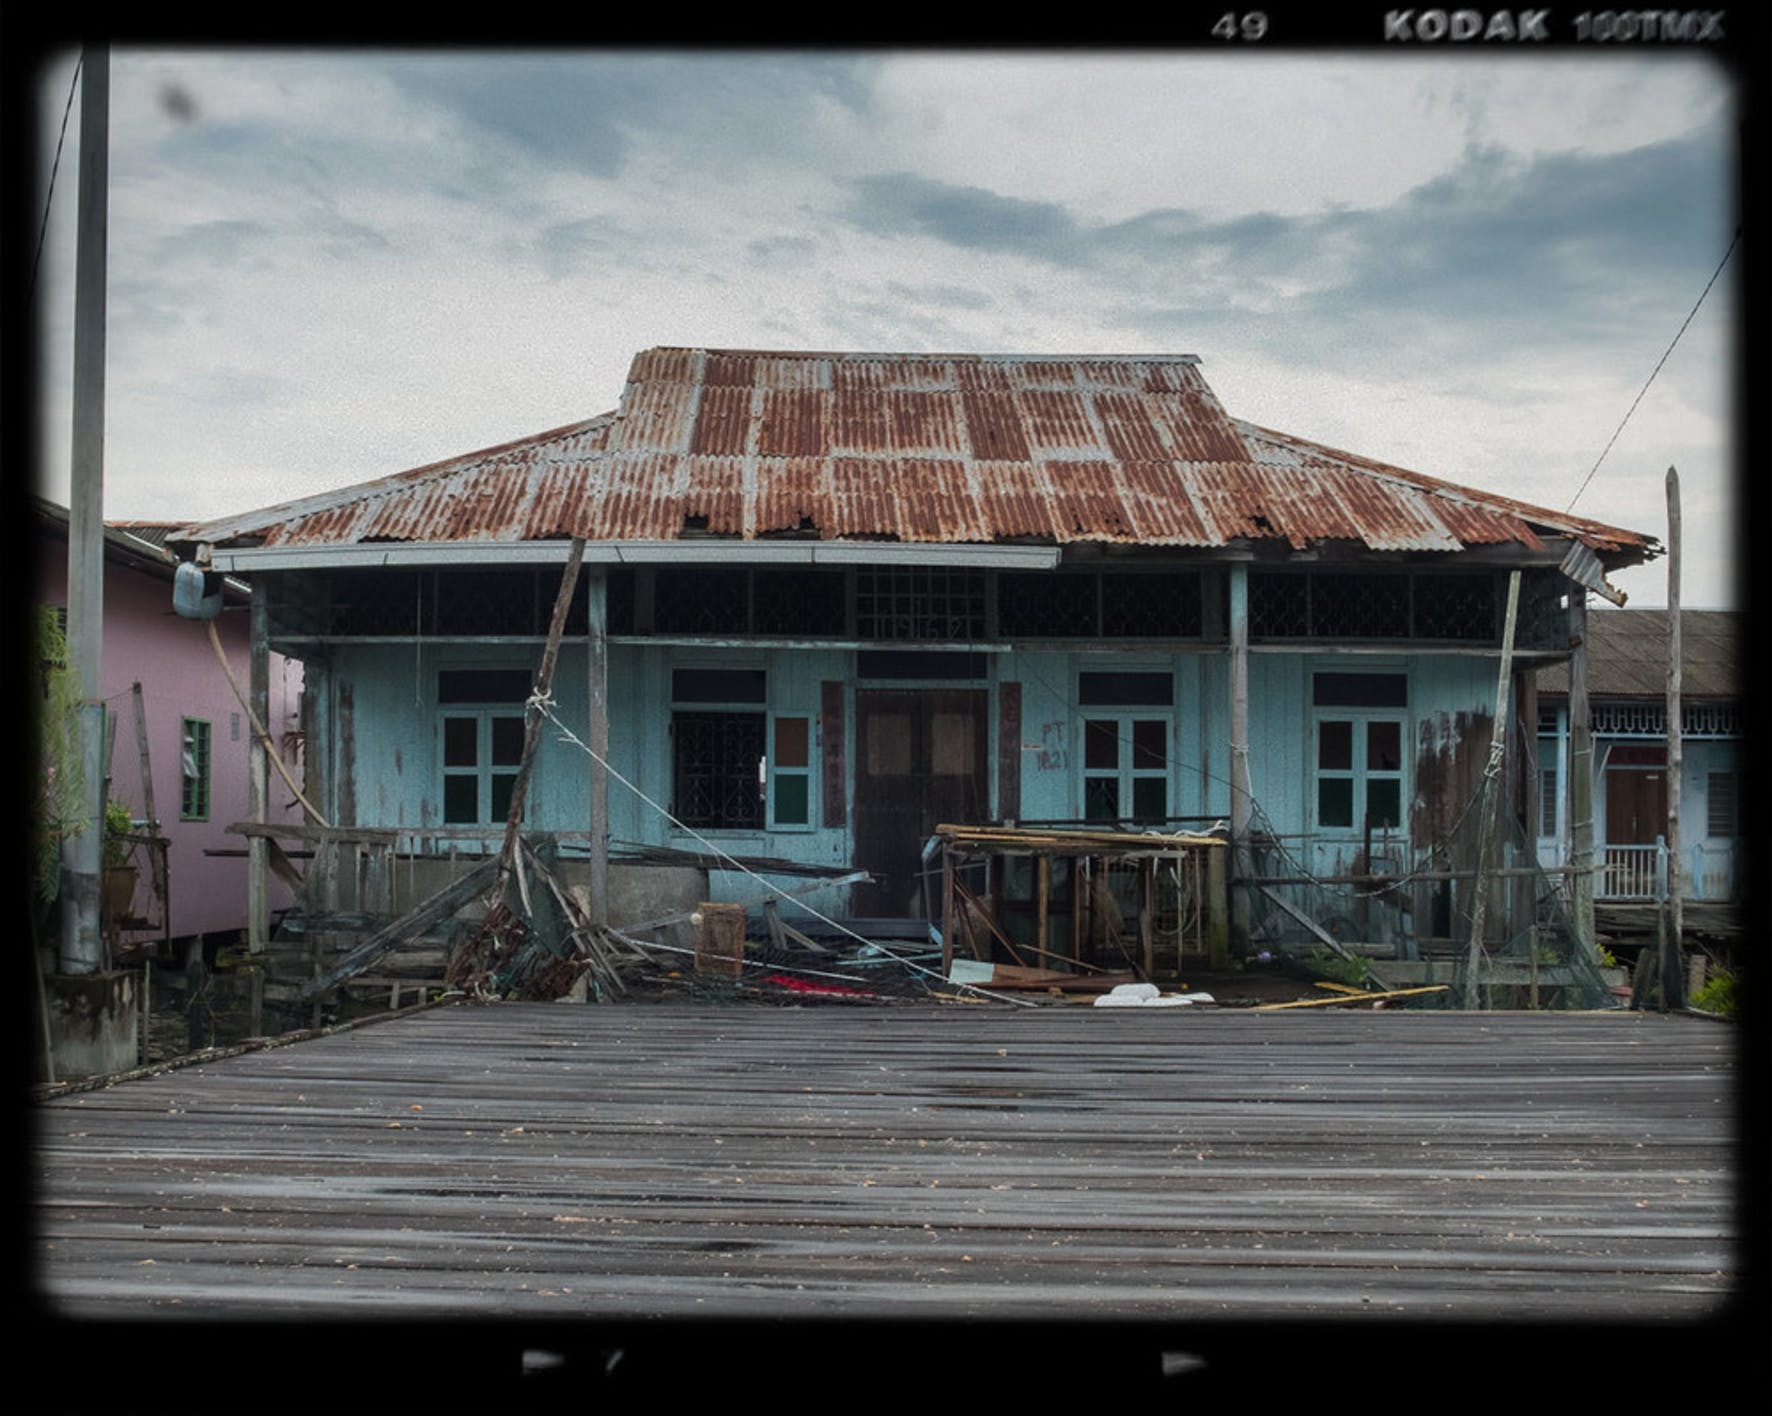 Distressed or abandoned property real estate investment deals